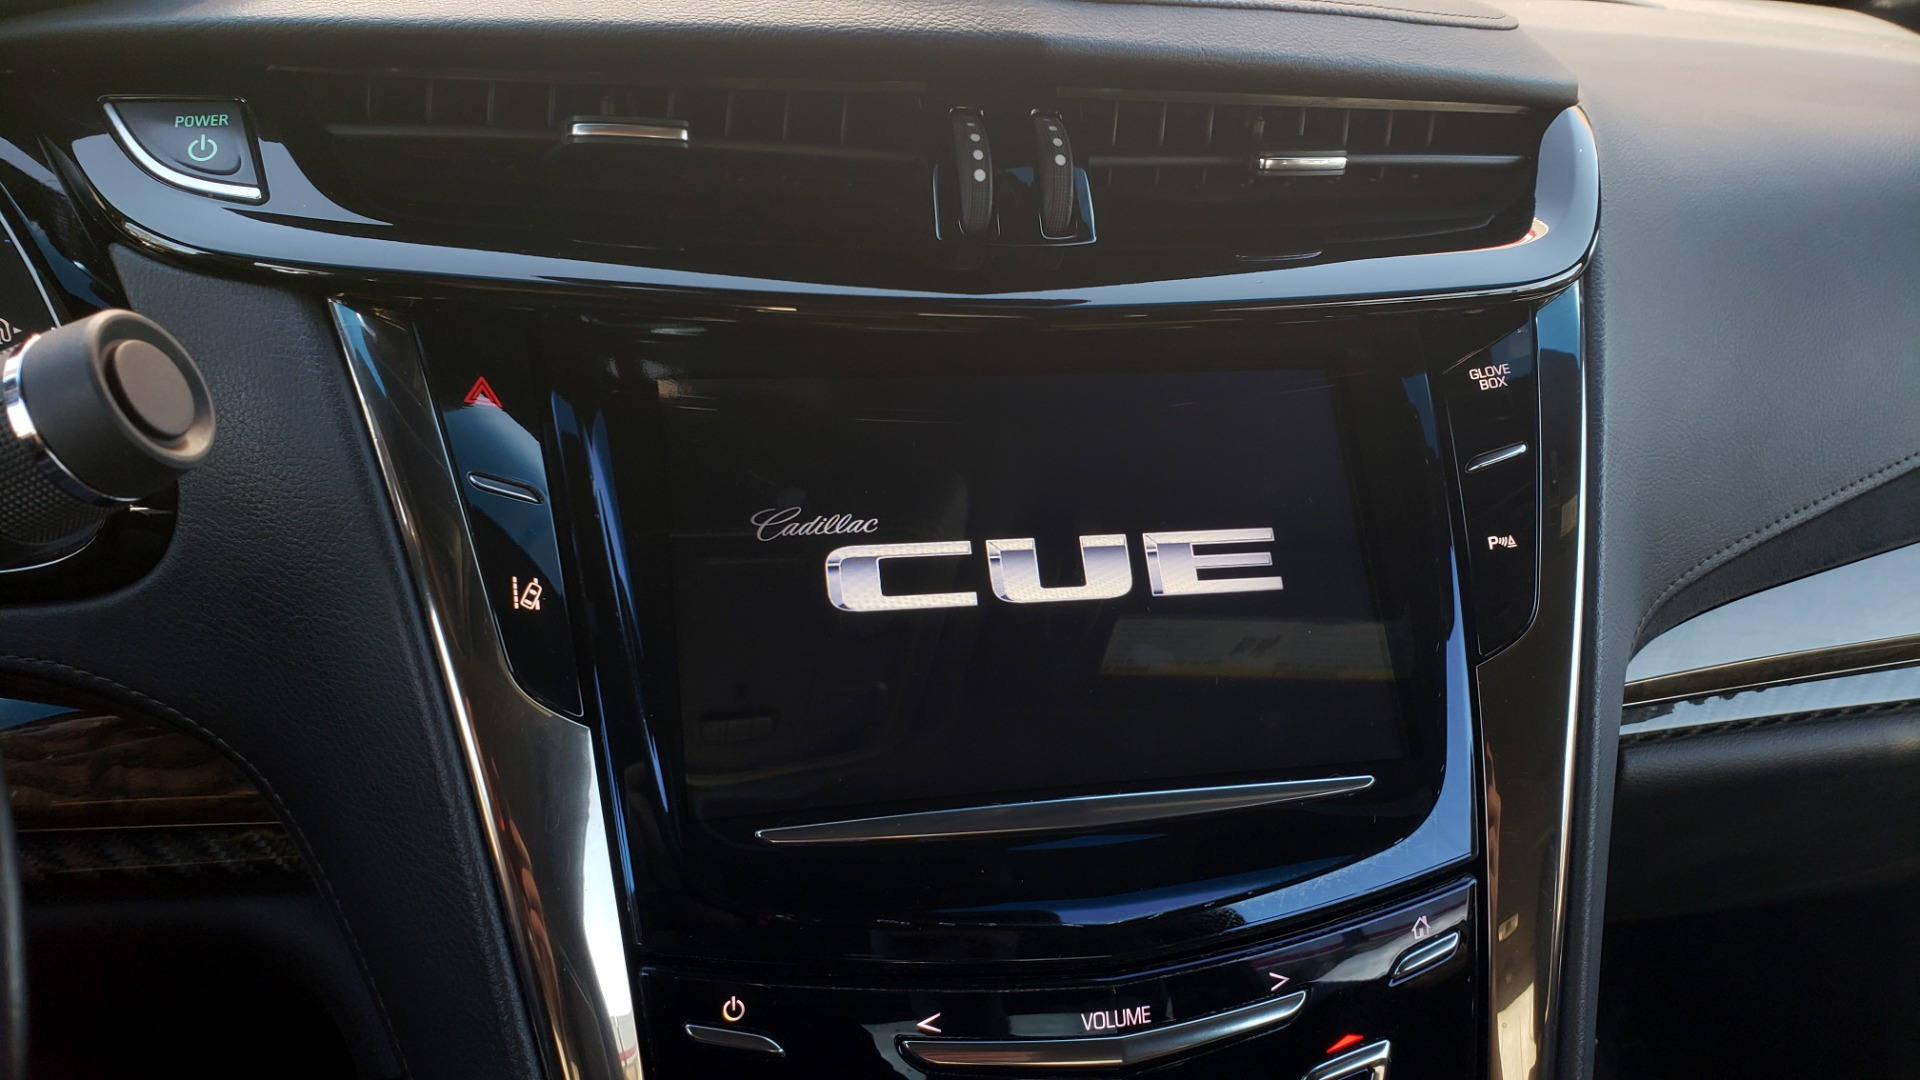 Used 2014 Cadillac ELR 2DR COUPE / HYBRID / NAV / BOSE / HEATED SEATS / REARVIEW for sale $19,995 at Formula Imports in Charlotte NC 28227 47